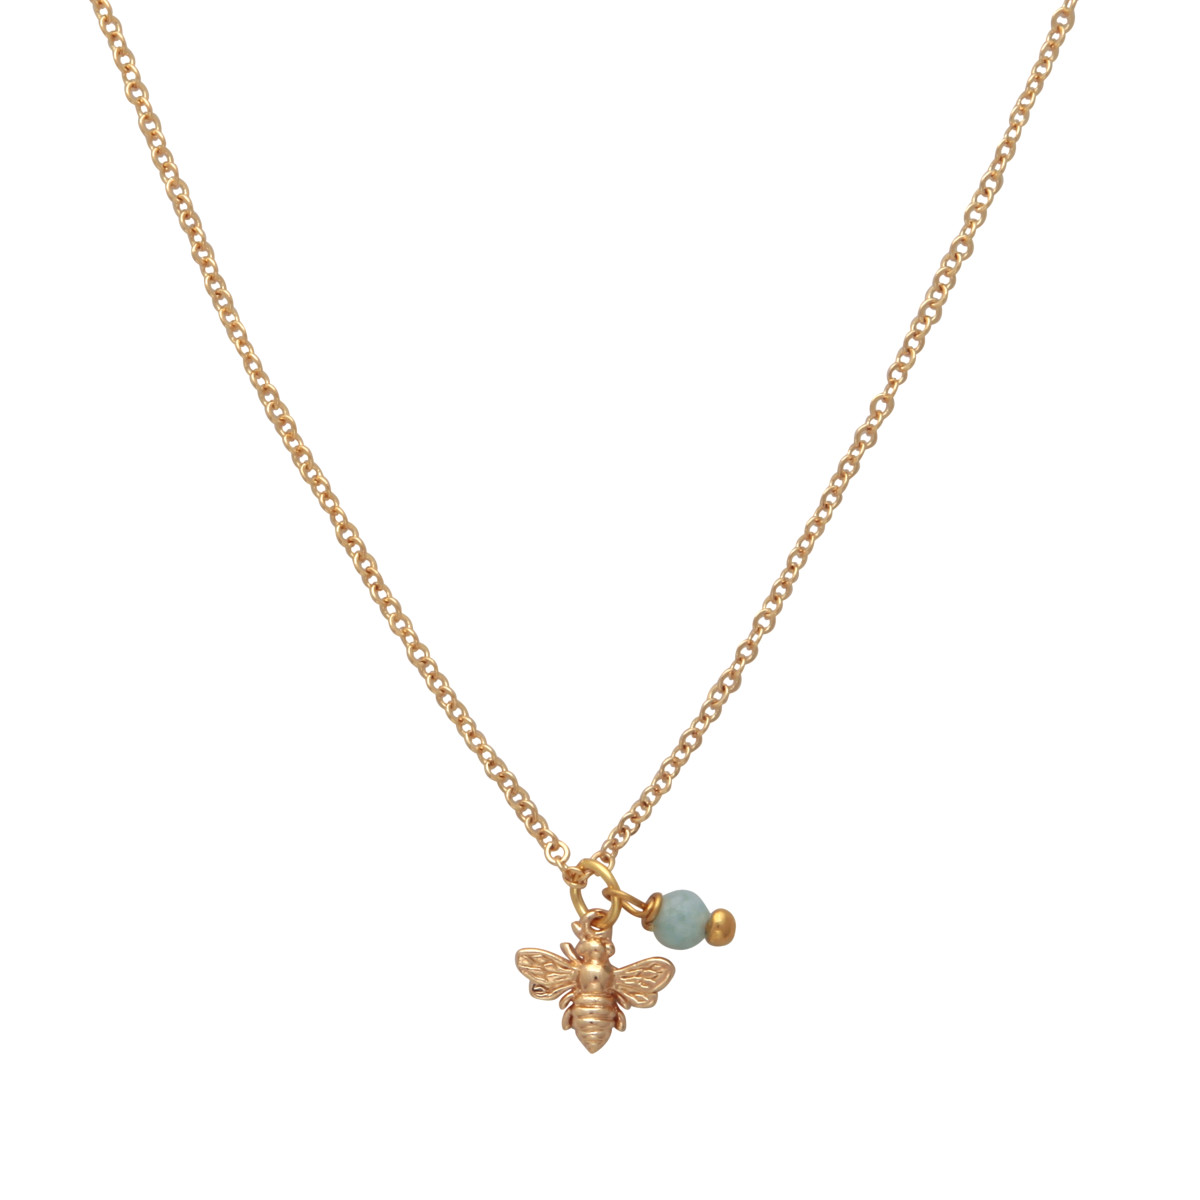 Mirabelle – Jigsaw – £45 Bee Necklace